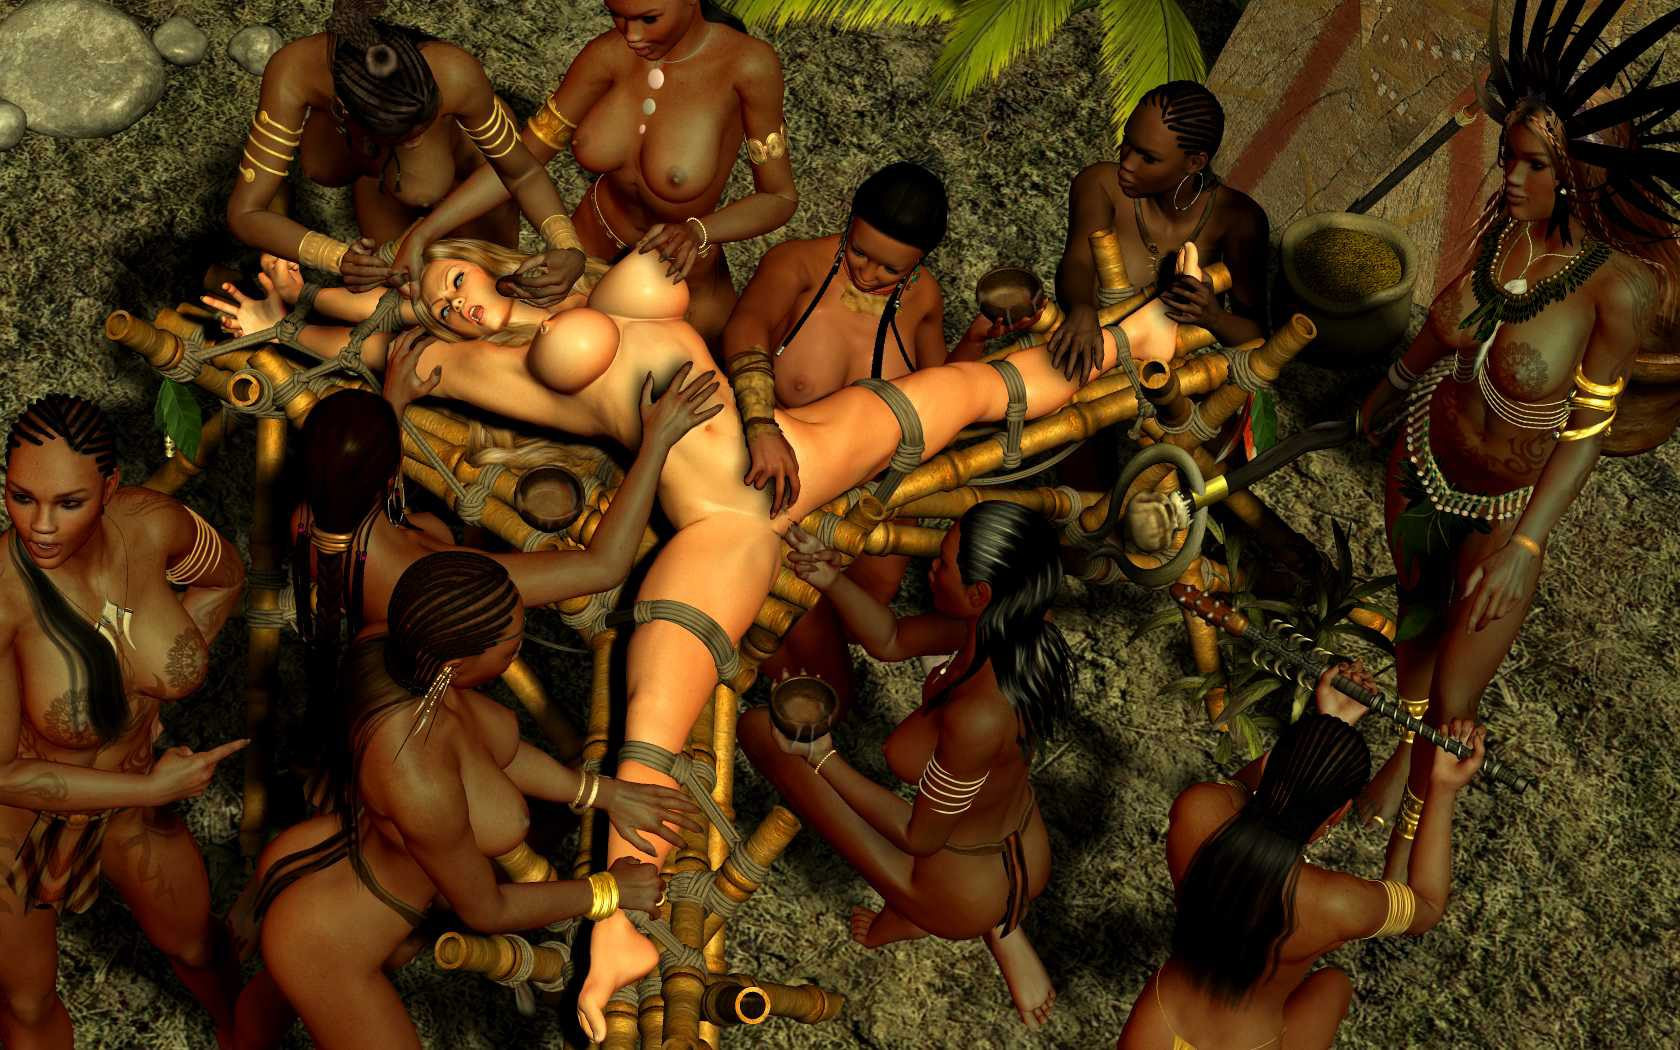 Pictures of jungle people having sex